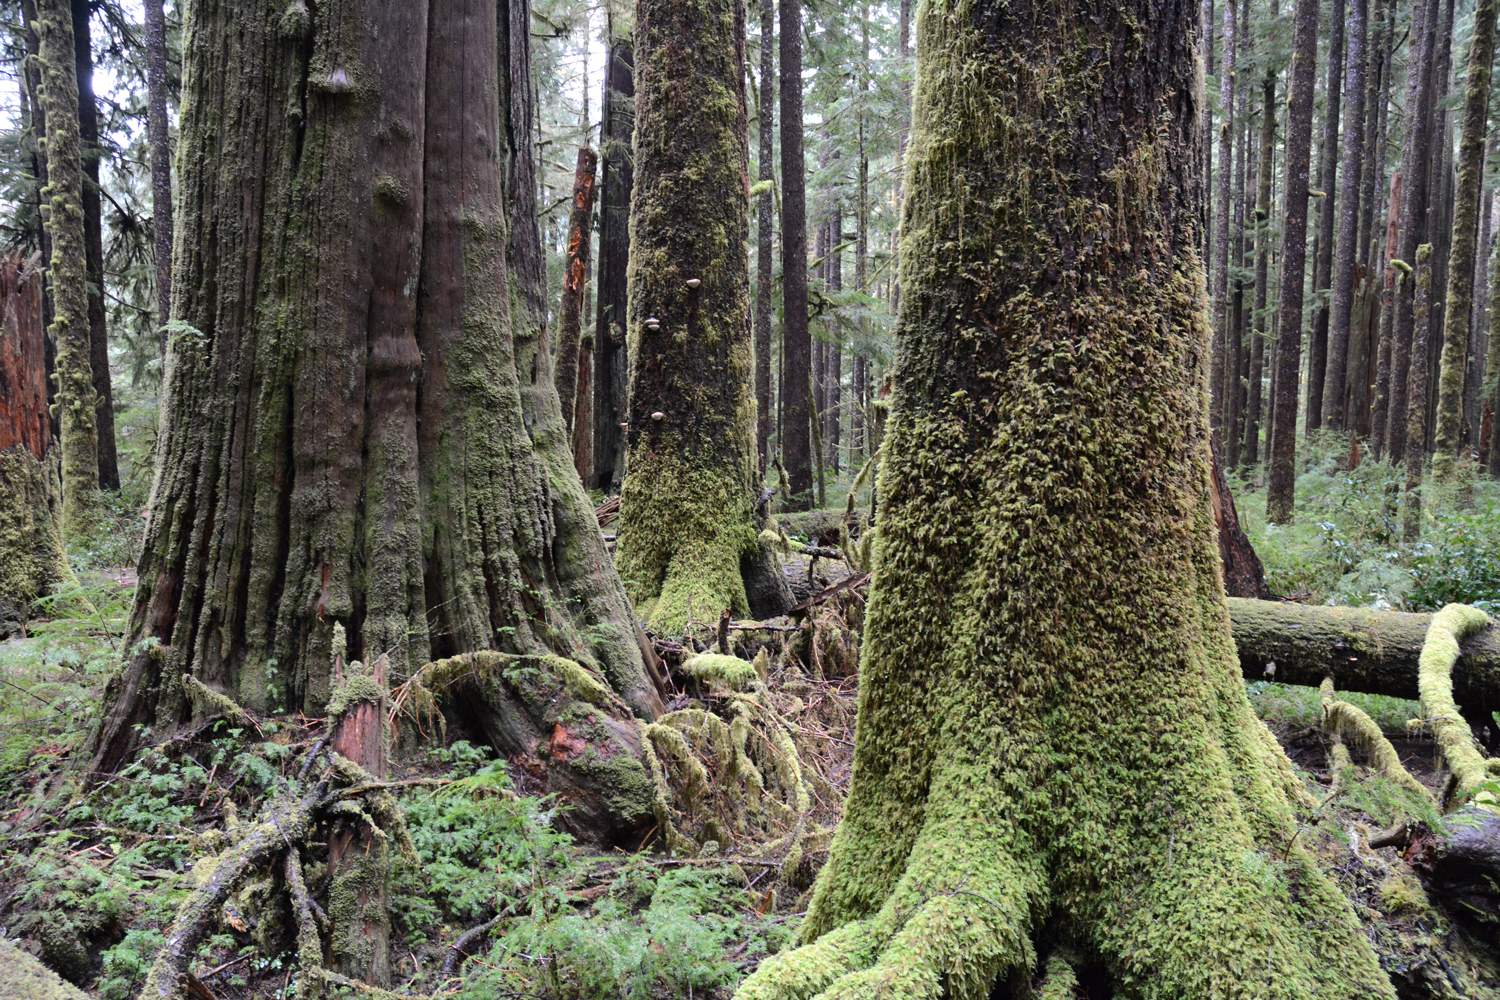 An old growth rainforest on Vancouver Island, British Columbia, Canada